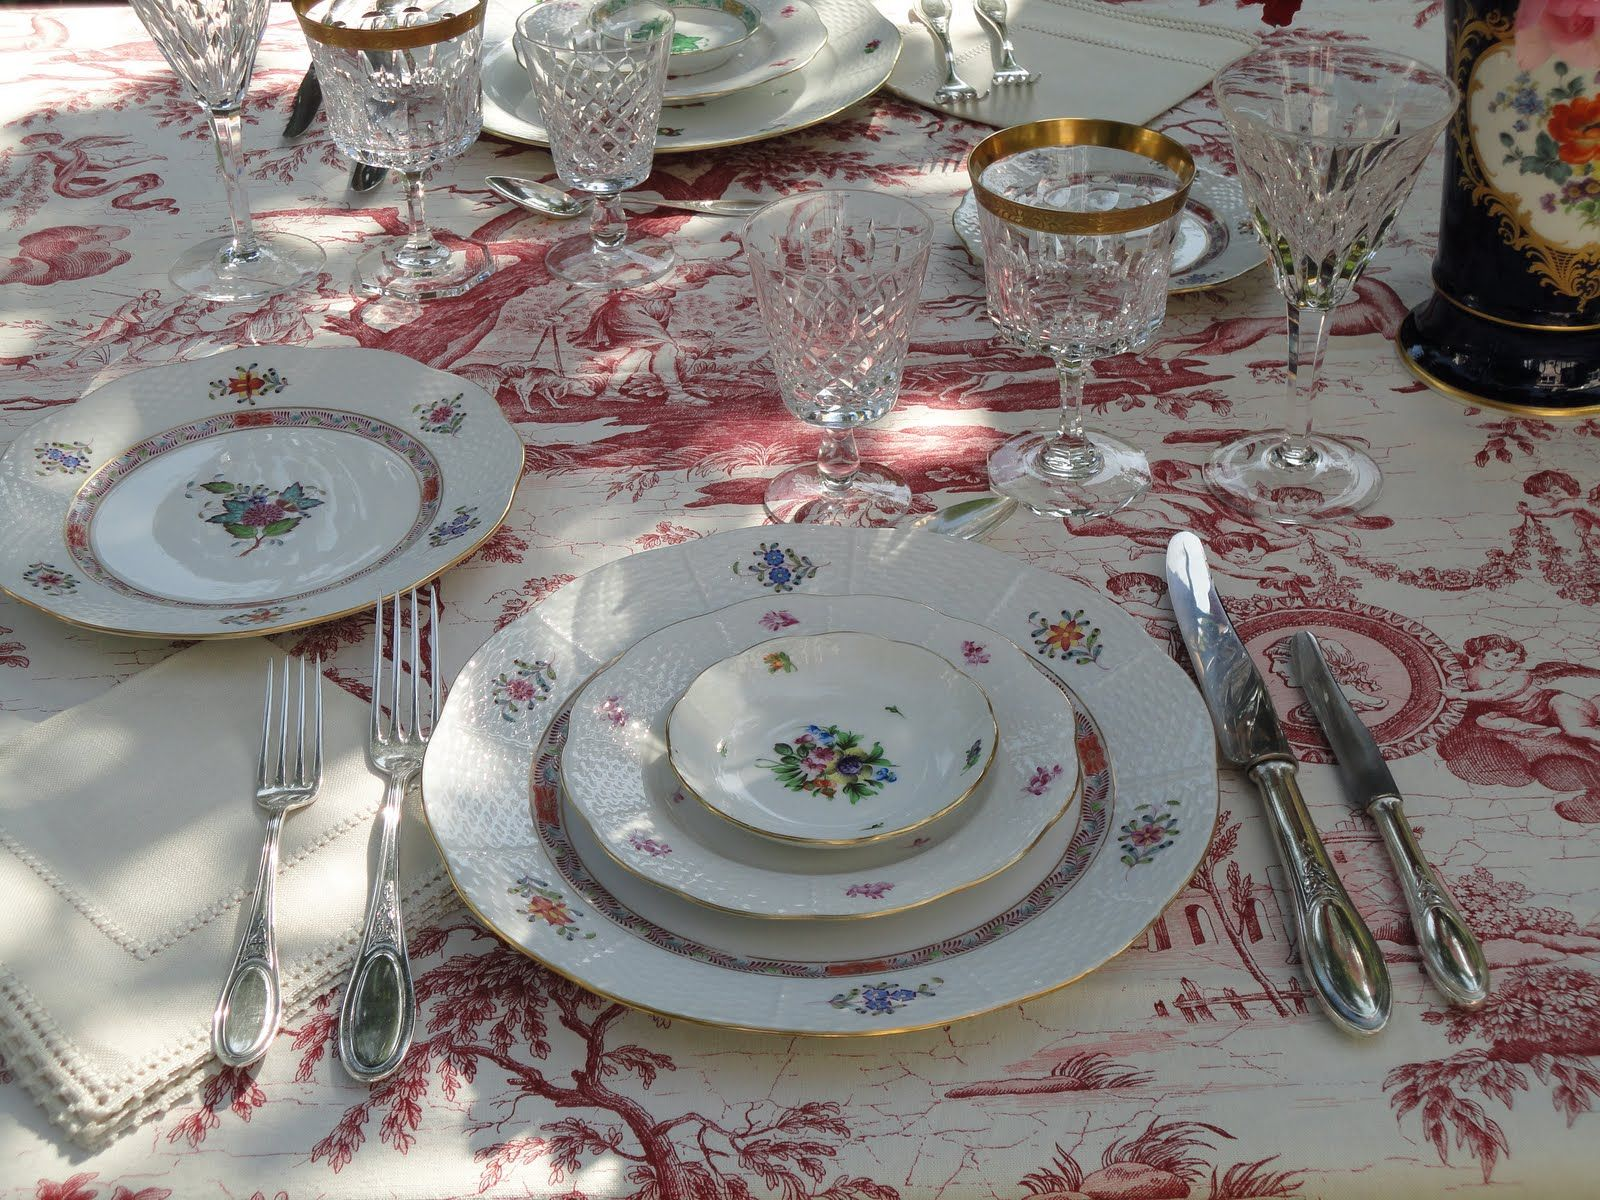 This is a picture of how a typical holiday table setup would look like in Switzerland. (Thanksgiving,Christmas,Easter etc.)